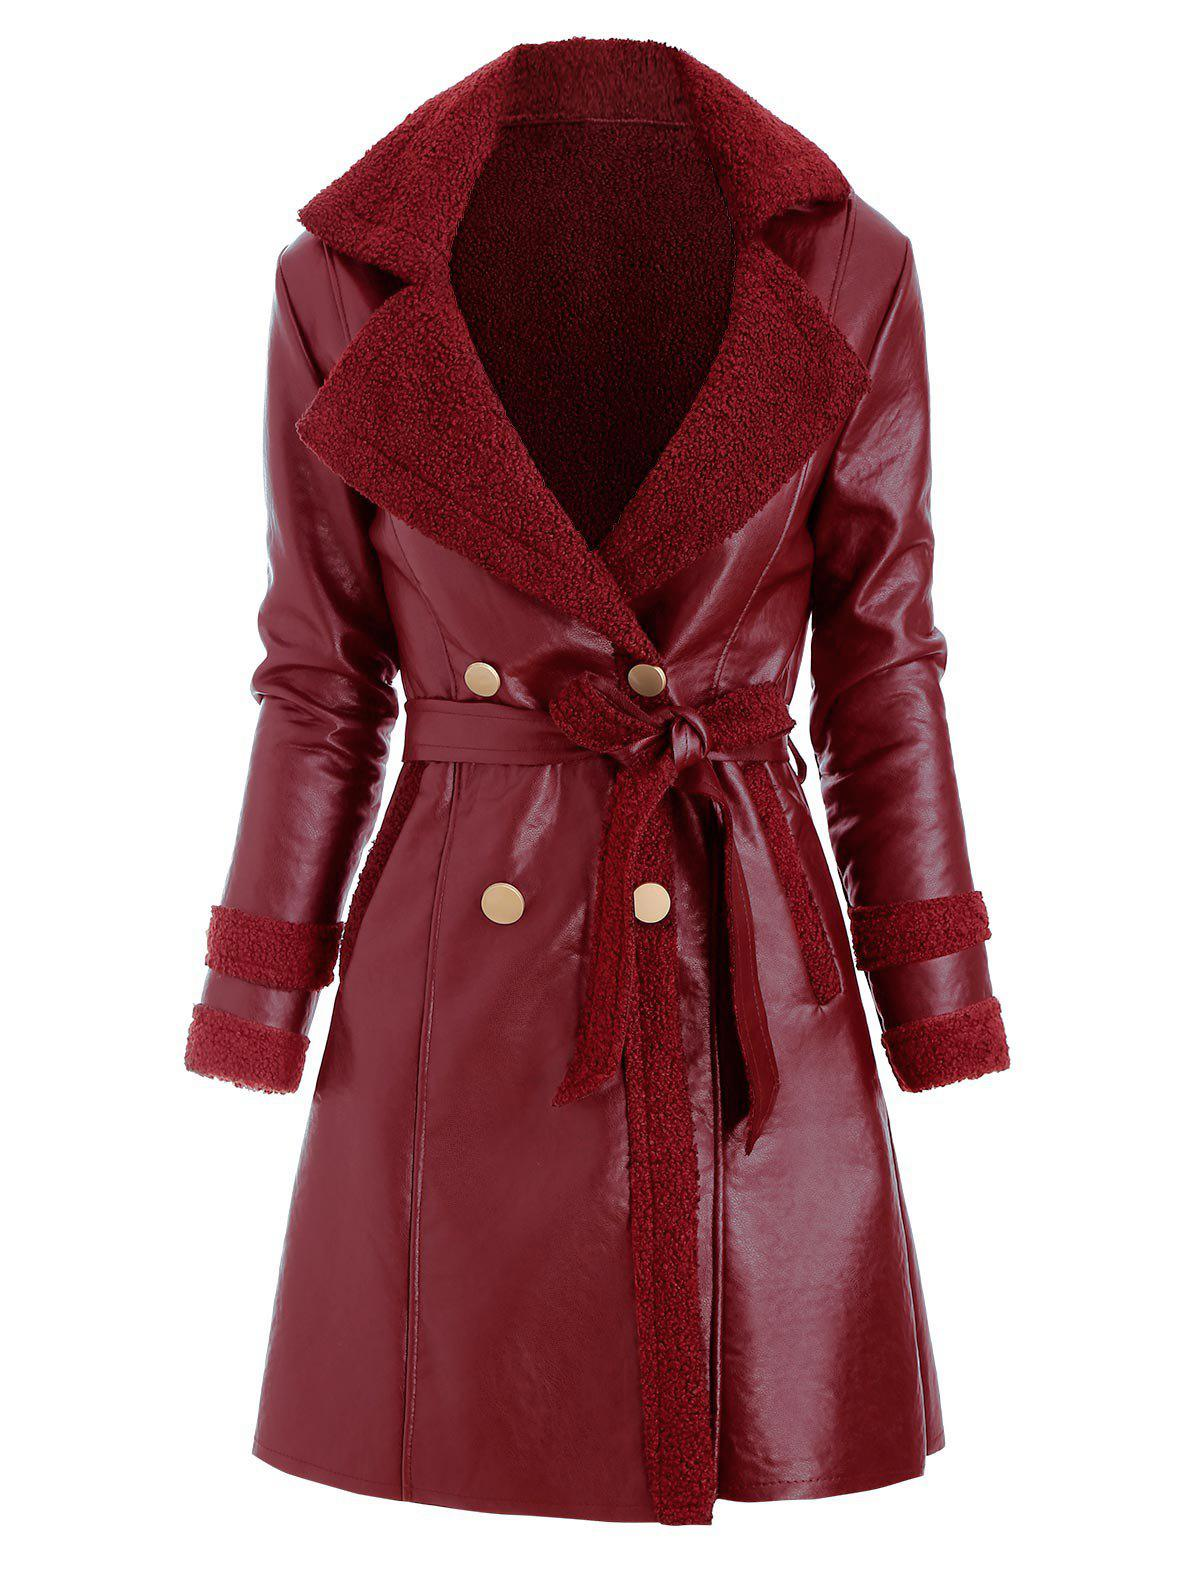 Faux Leather Shearling Insert Belted Pocket Coat - RED WINE 3XL